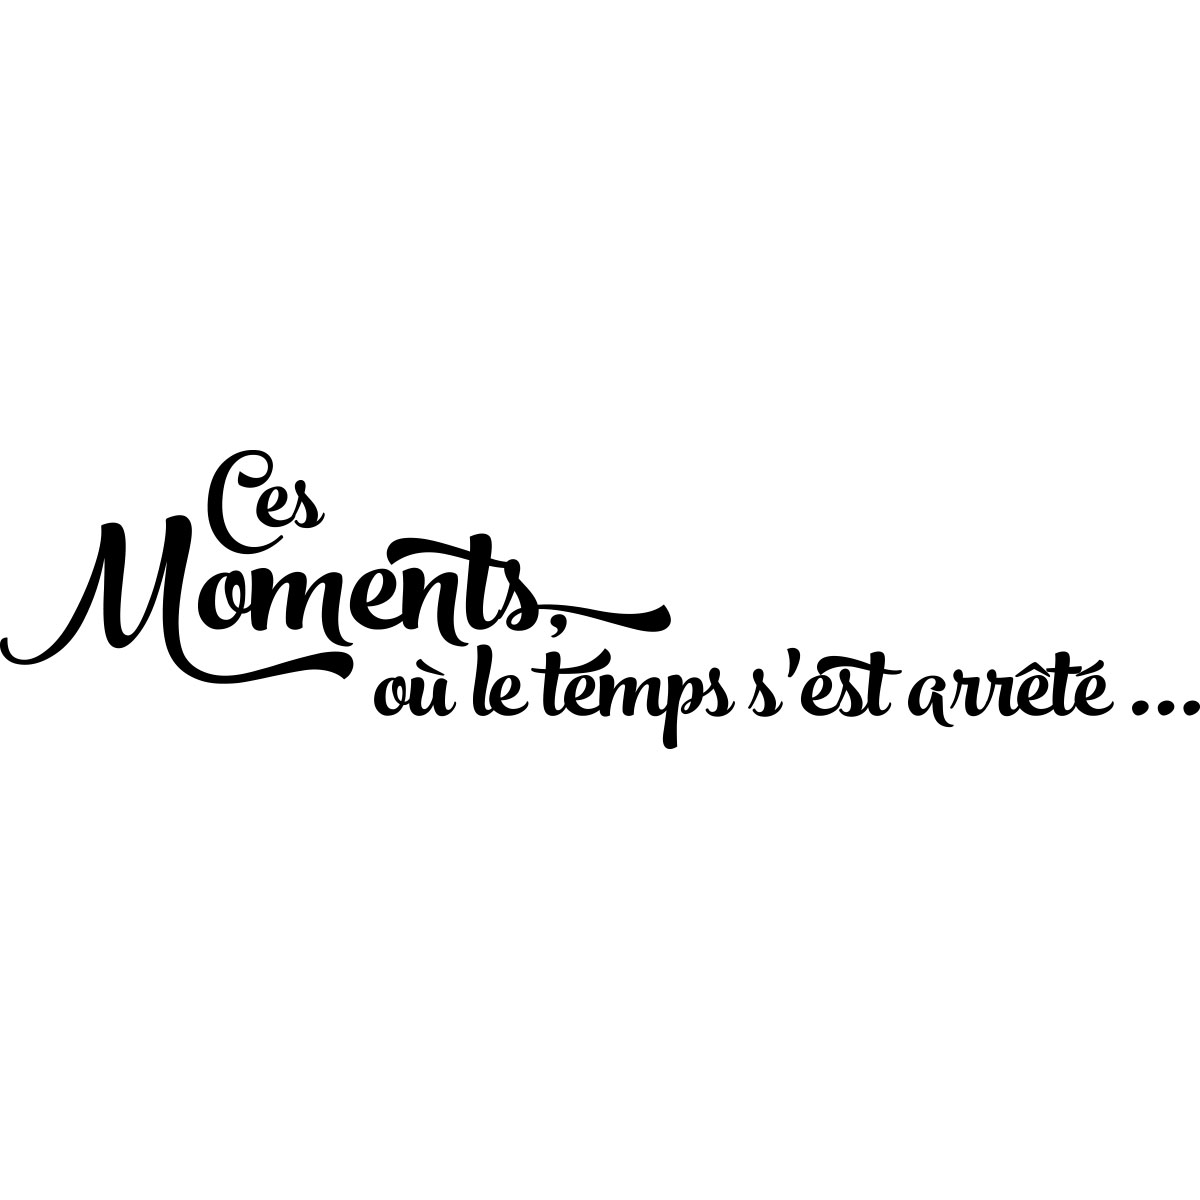 sticker ces moments o le temps s 39 est arr t stickers citations fran ais ambiance sticker. Black Bedroom Furniture Sets. Home Design Ideas